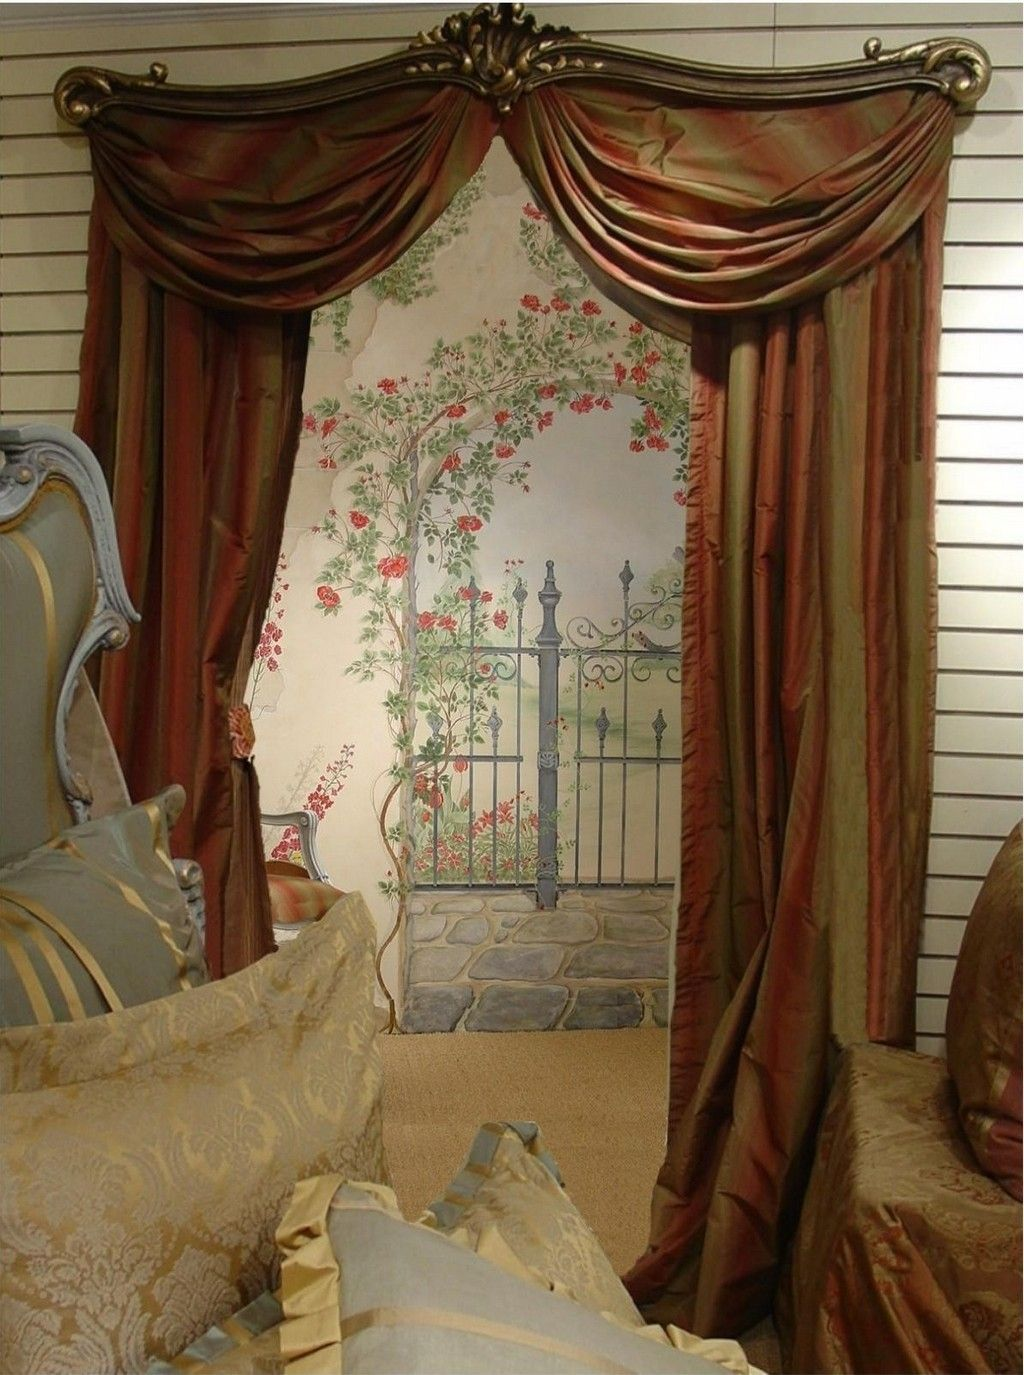 images of vintage drapes - Google Search | my own vintage ...